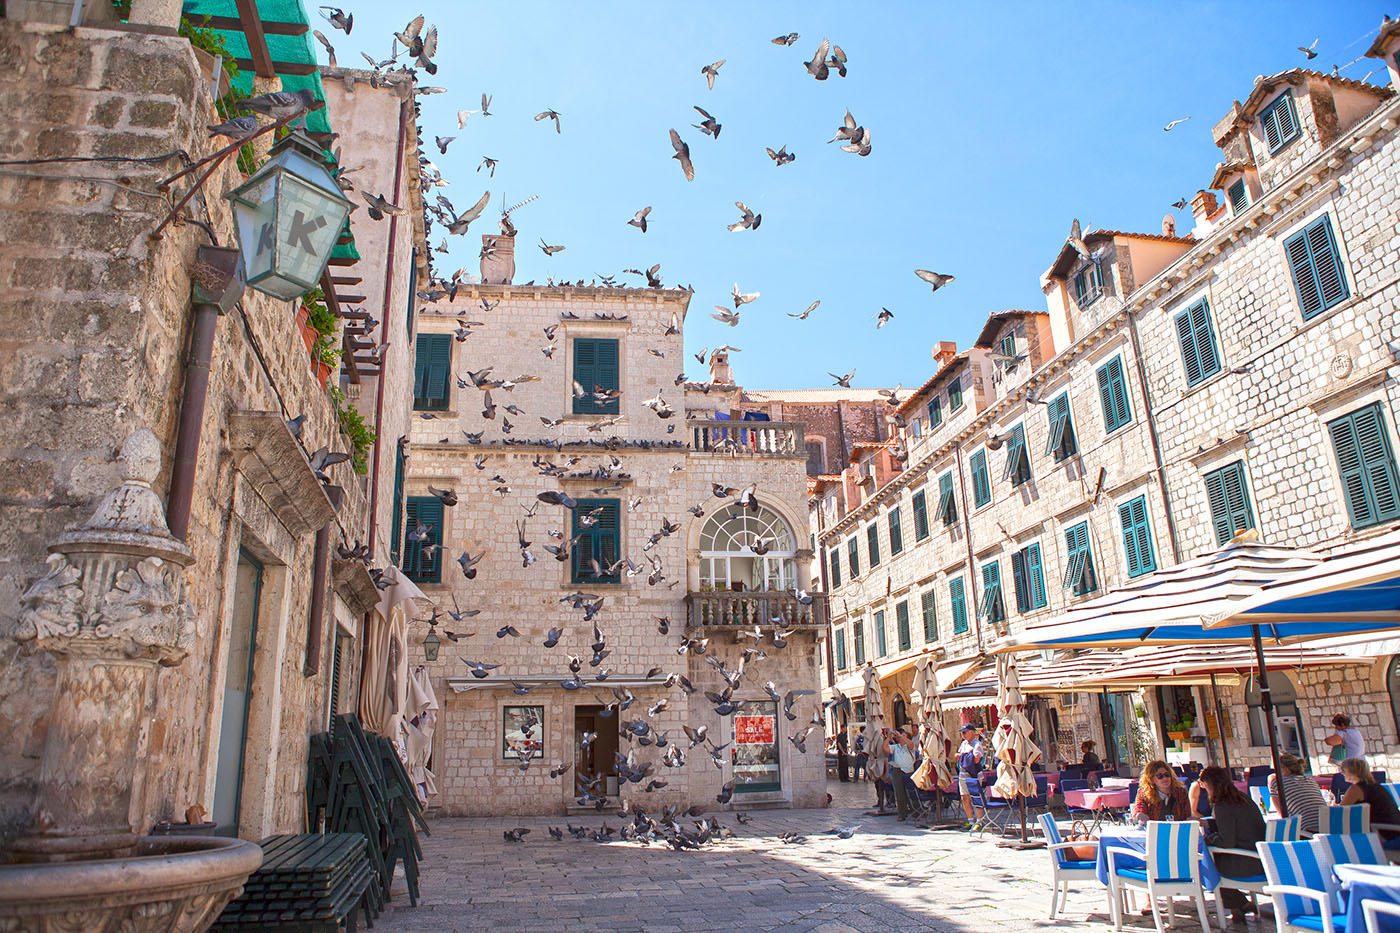 Feeding of pigeons is something that happens everyday in main square of Dubrovnik